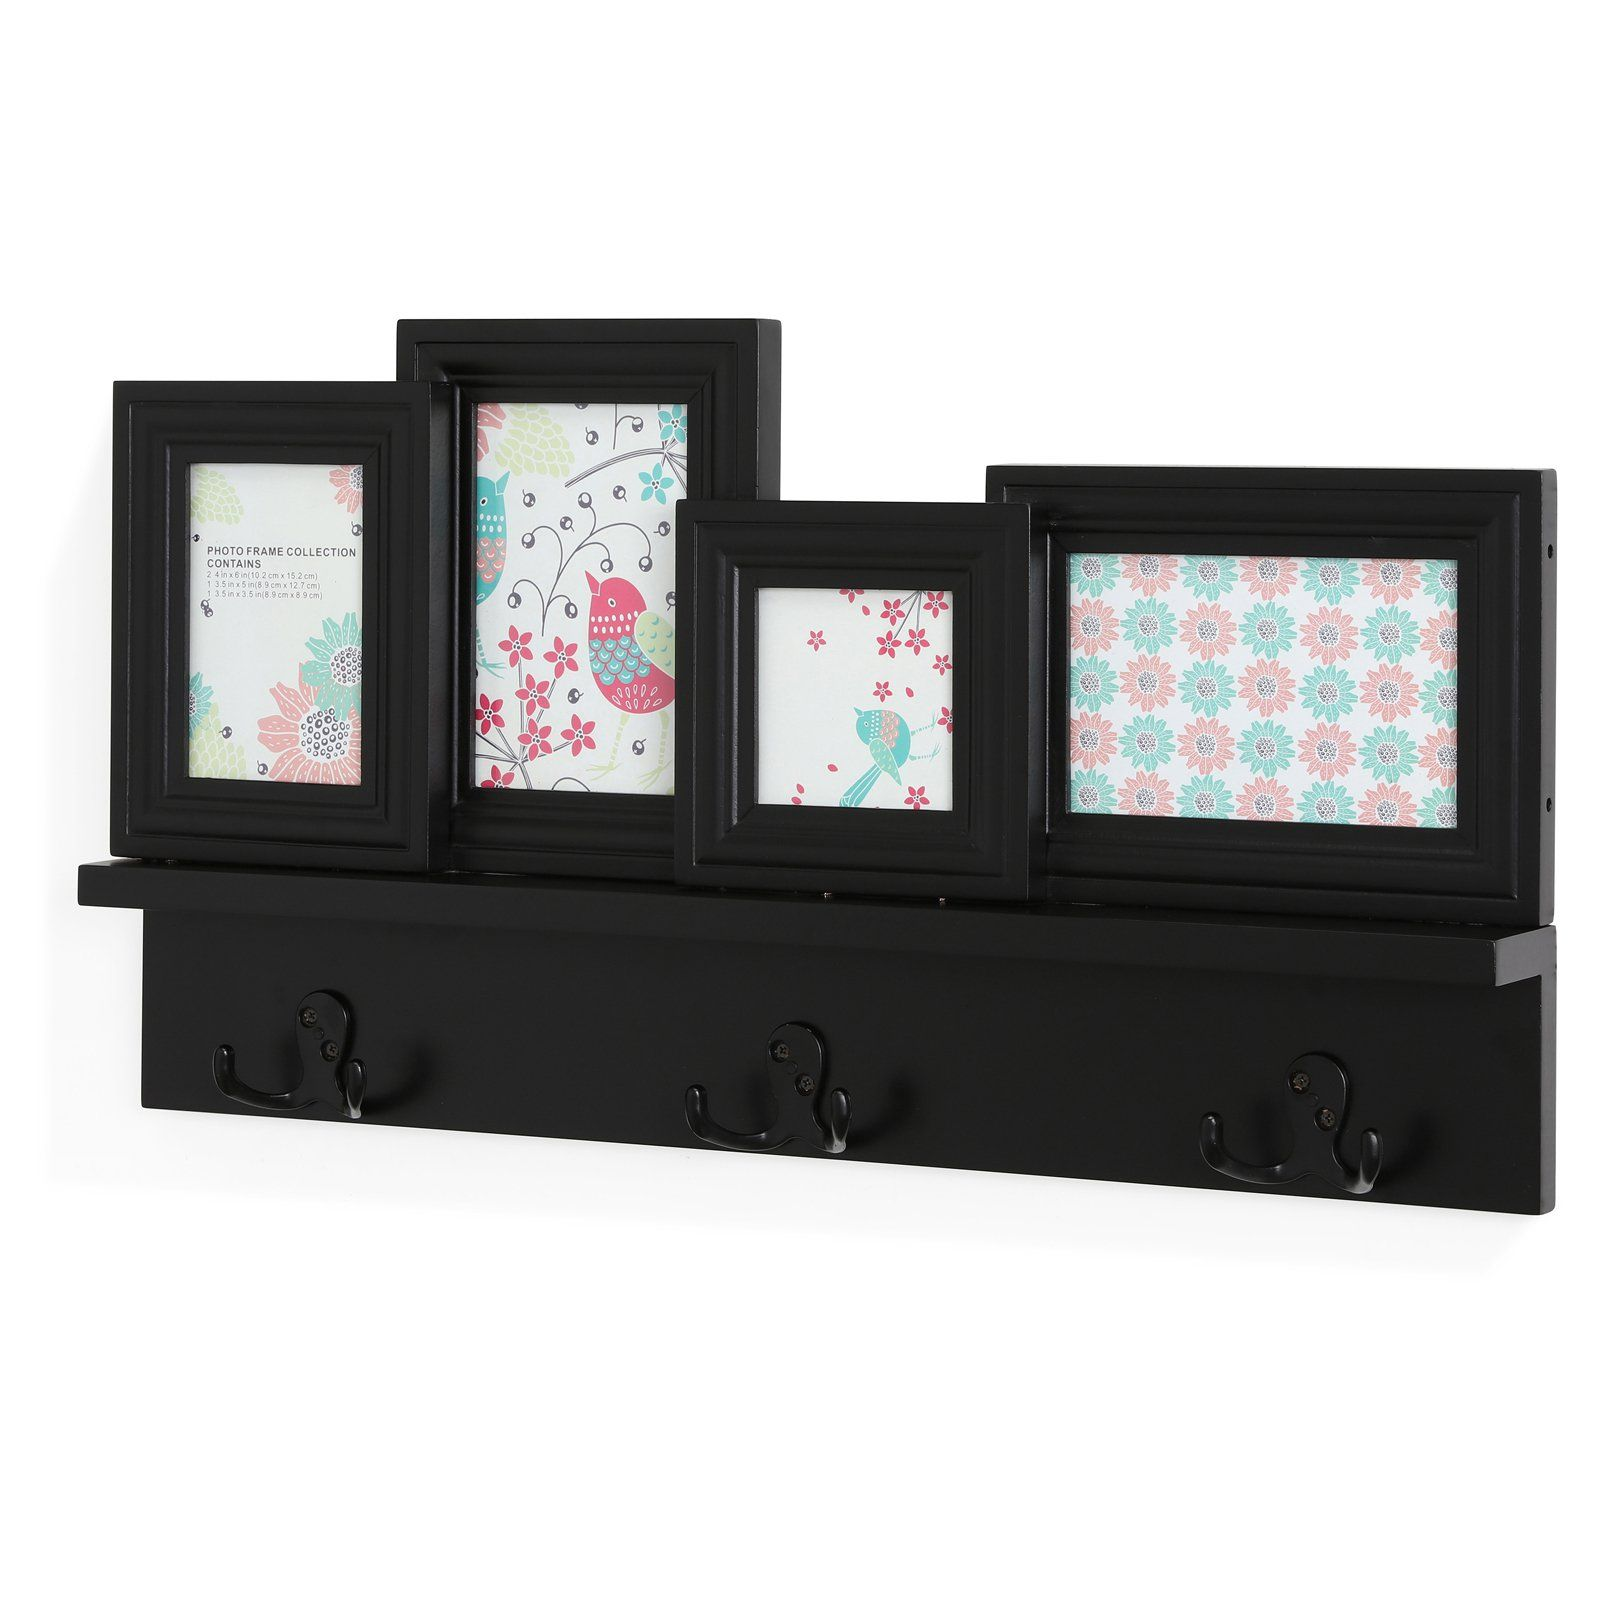 Danya B Wall Hanging Hooks With Built In Photo Frames Frames On Wall Picture Frame Display Frame